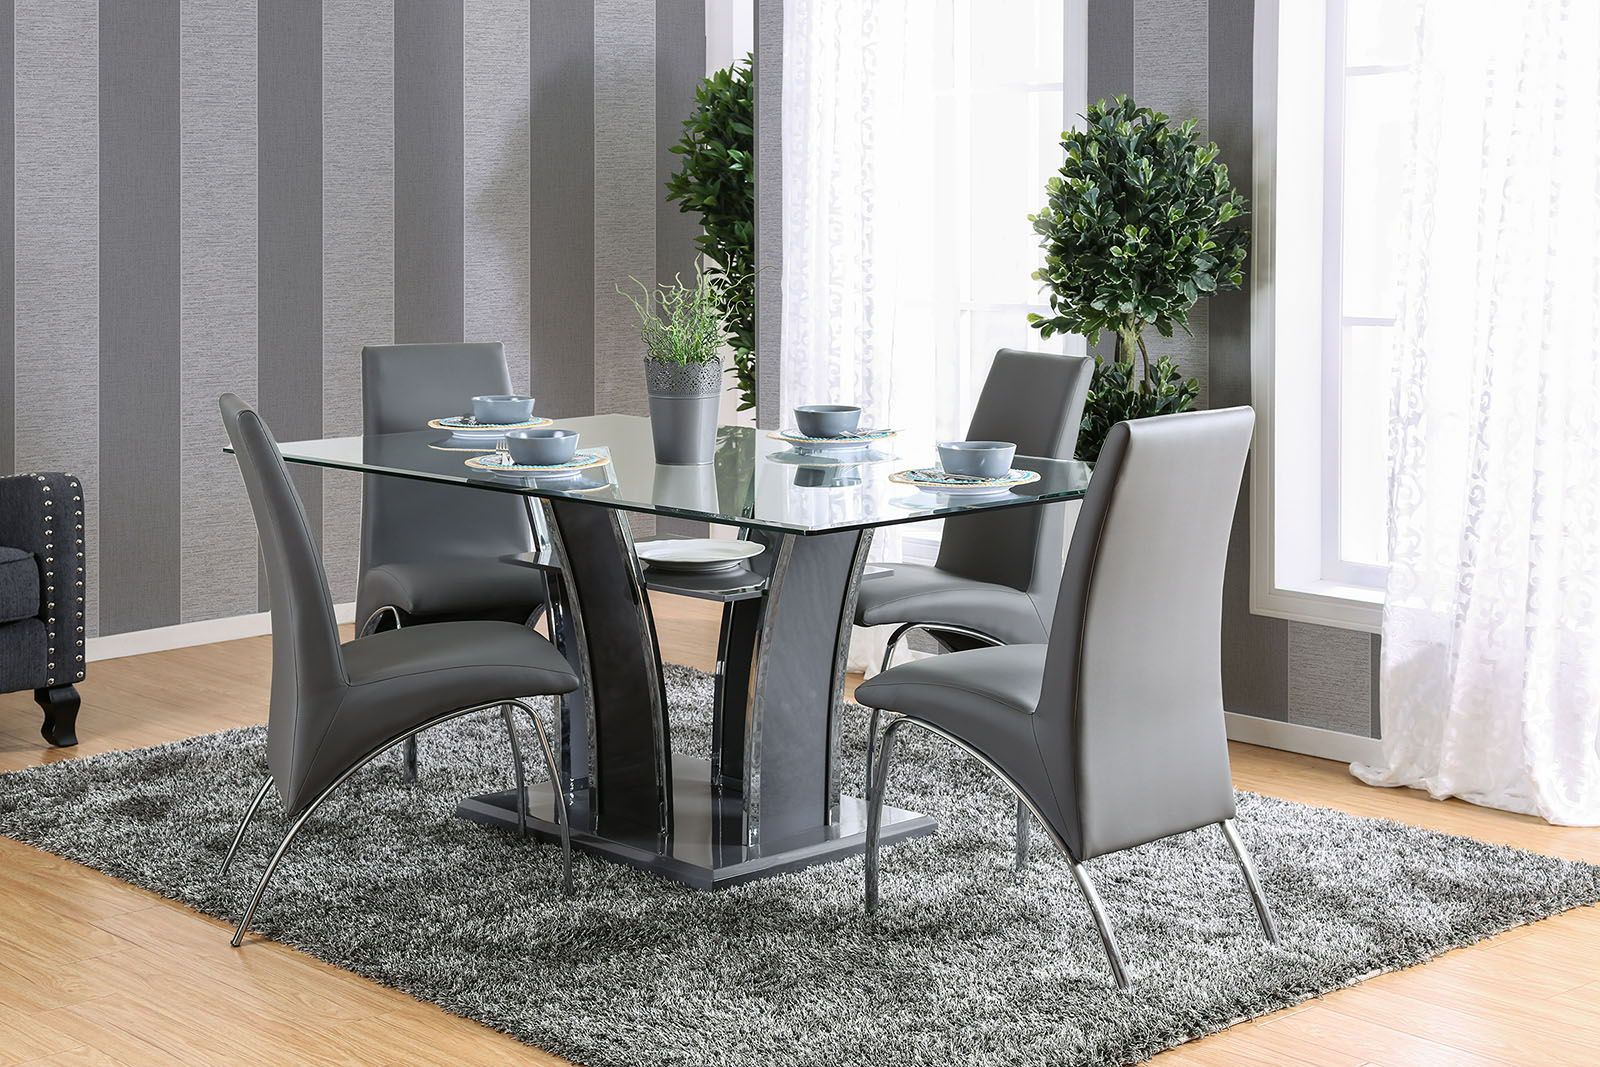 Glenview Dining Table Gray In 2021, Gray Dining Room Set